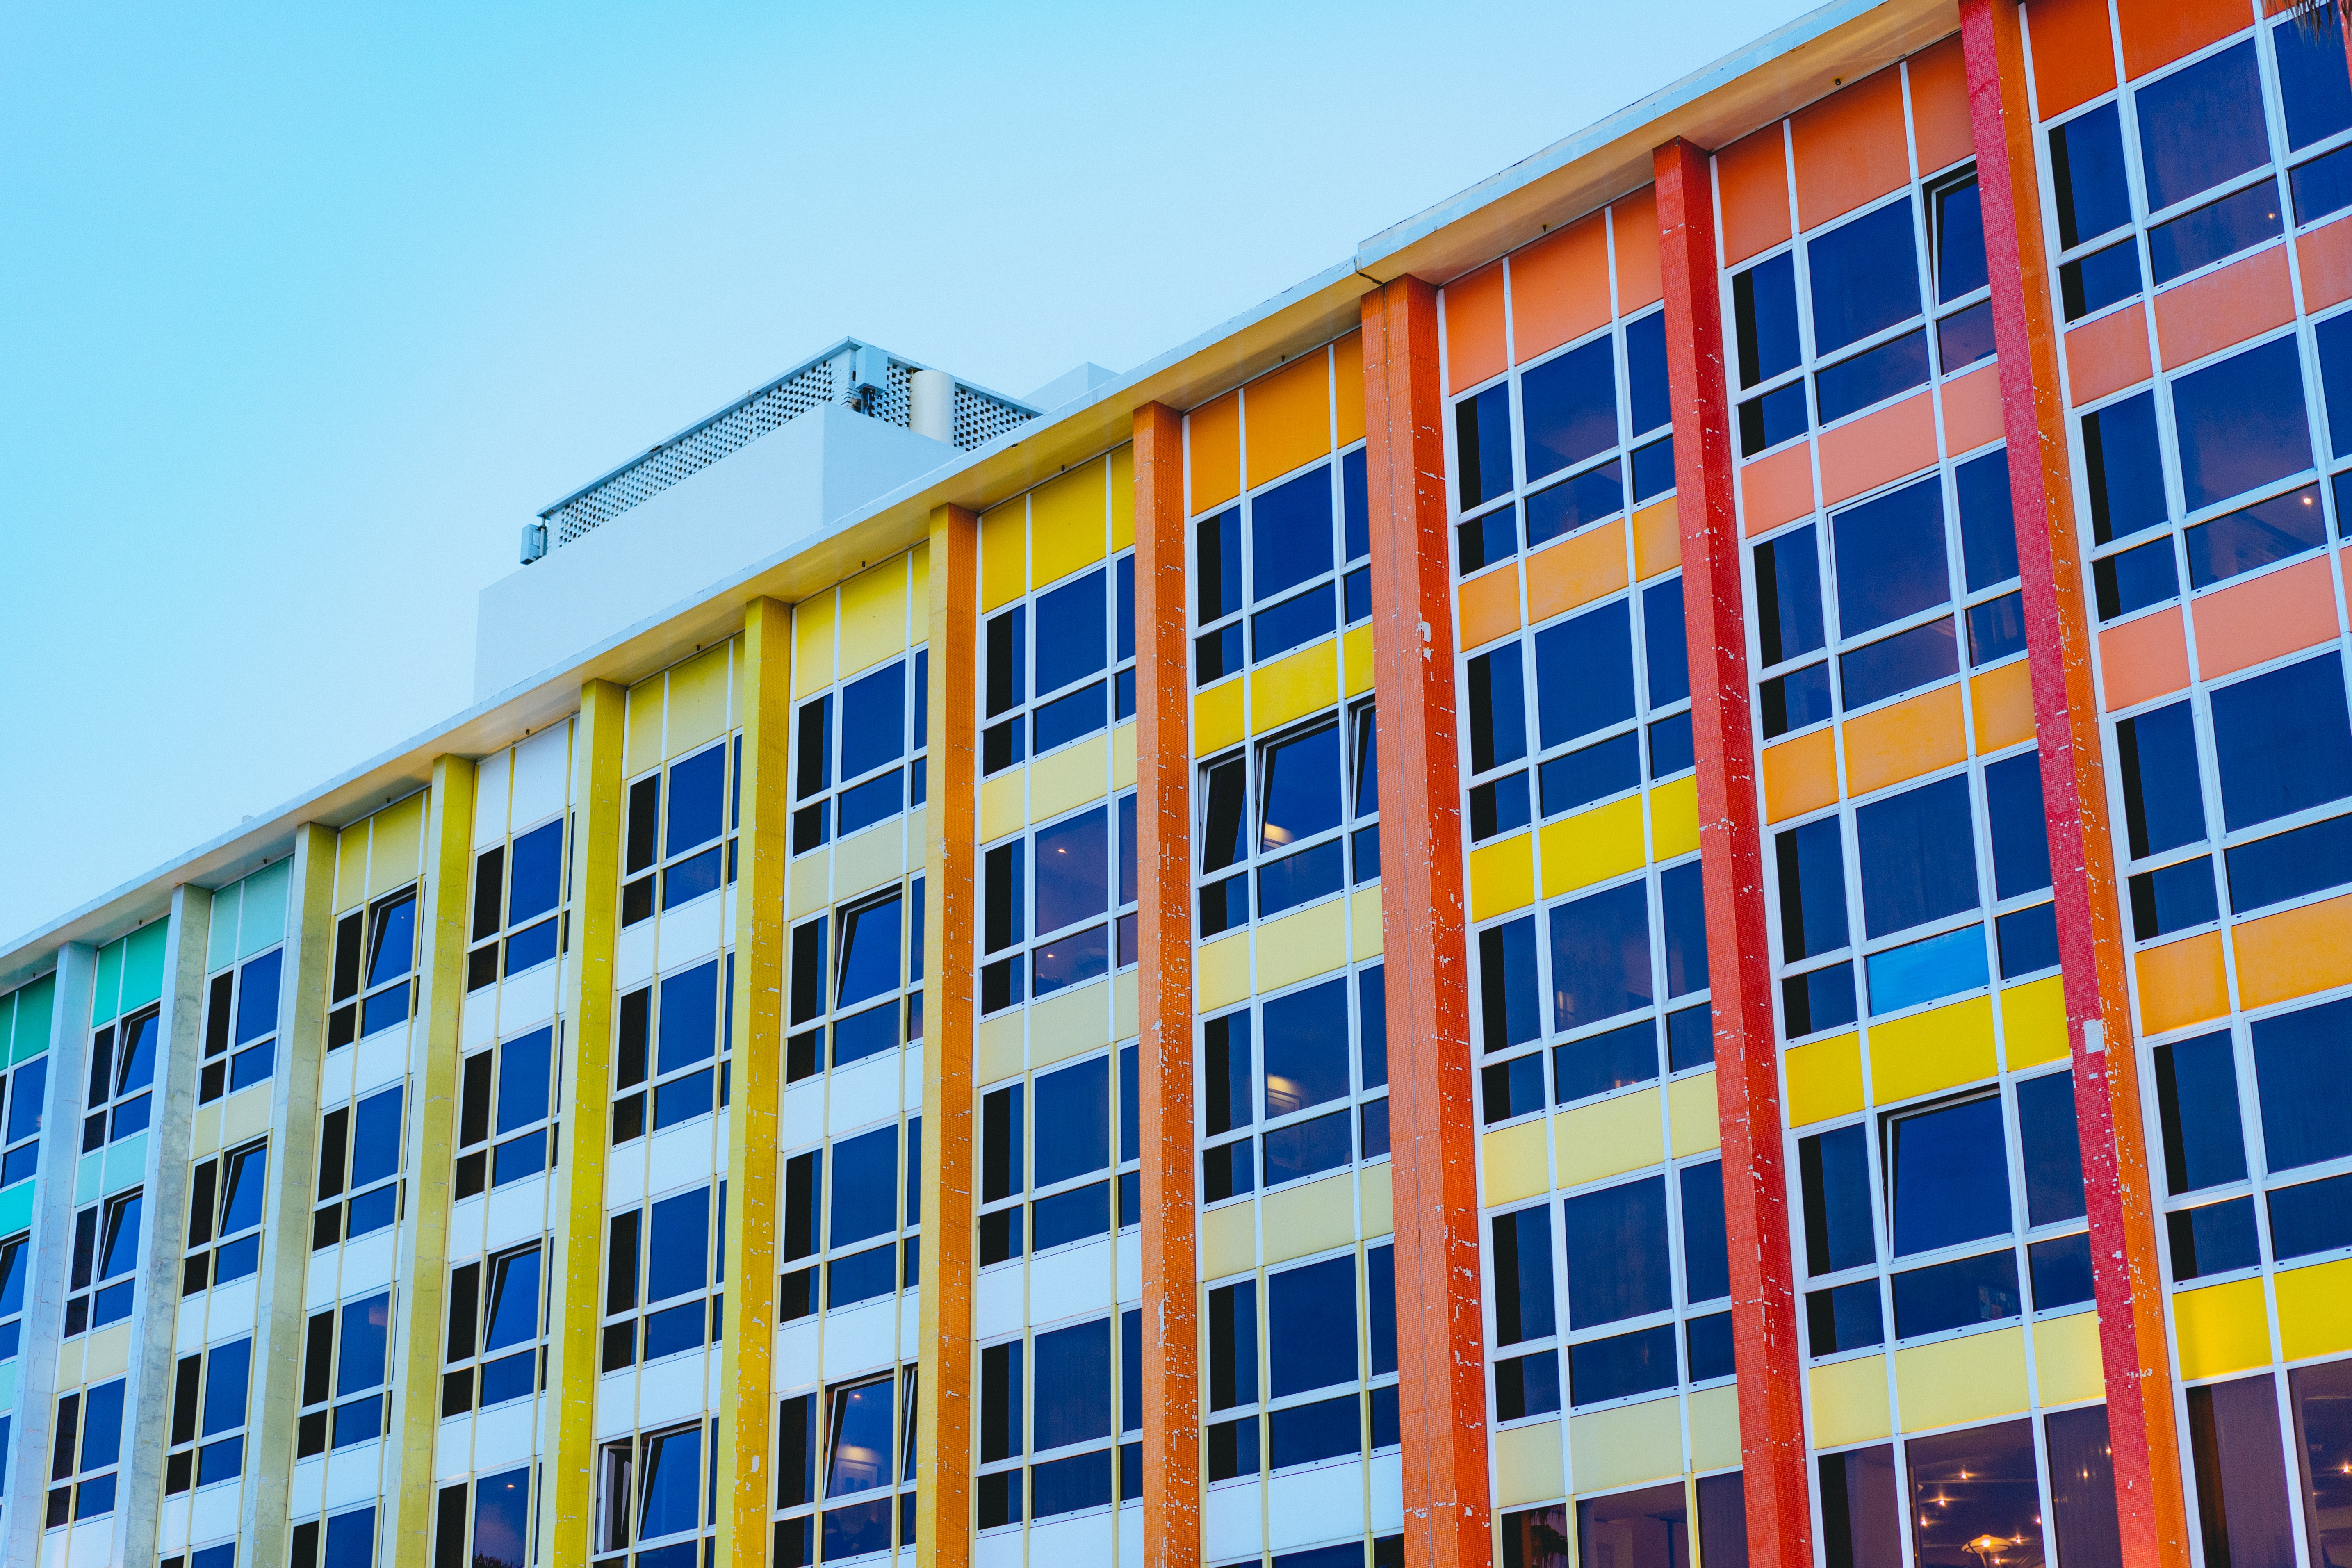 architectural photography of multicolored building under blue sky